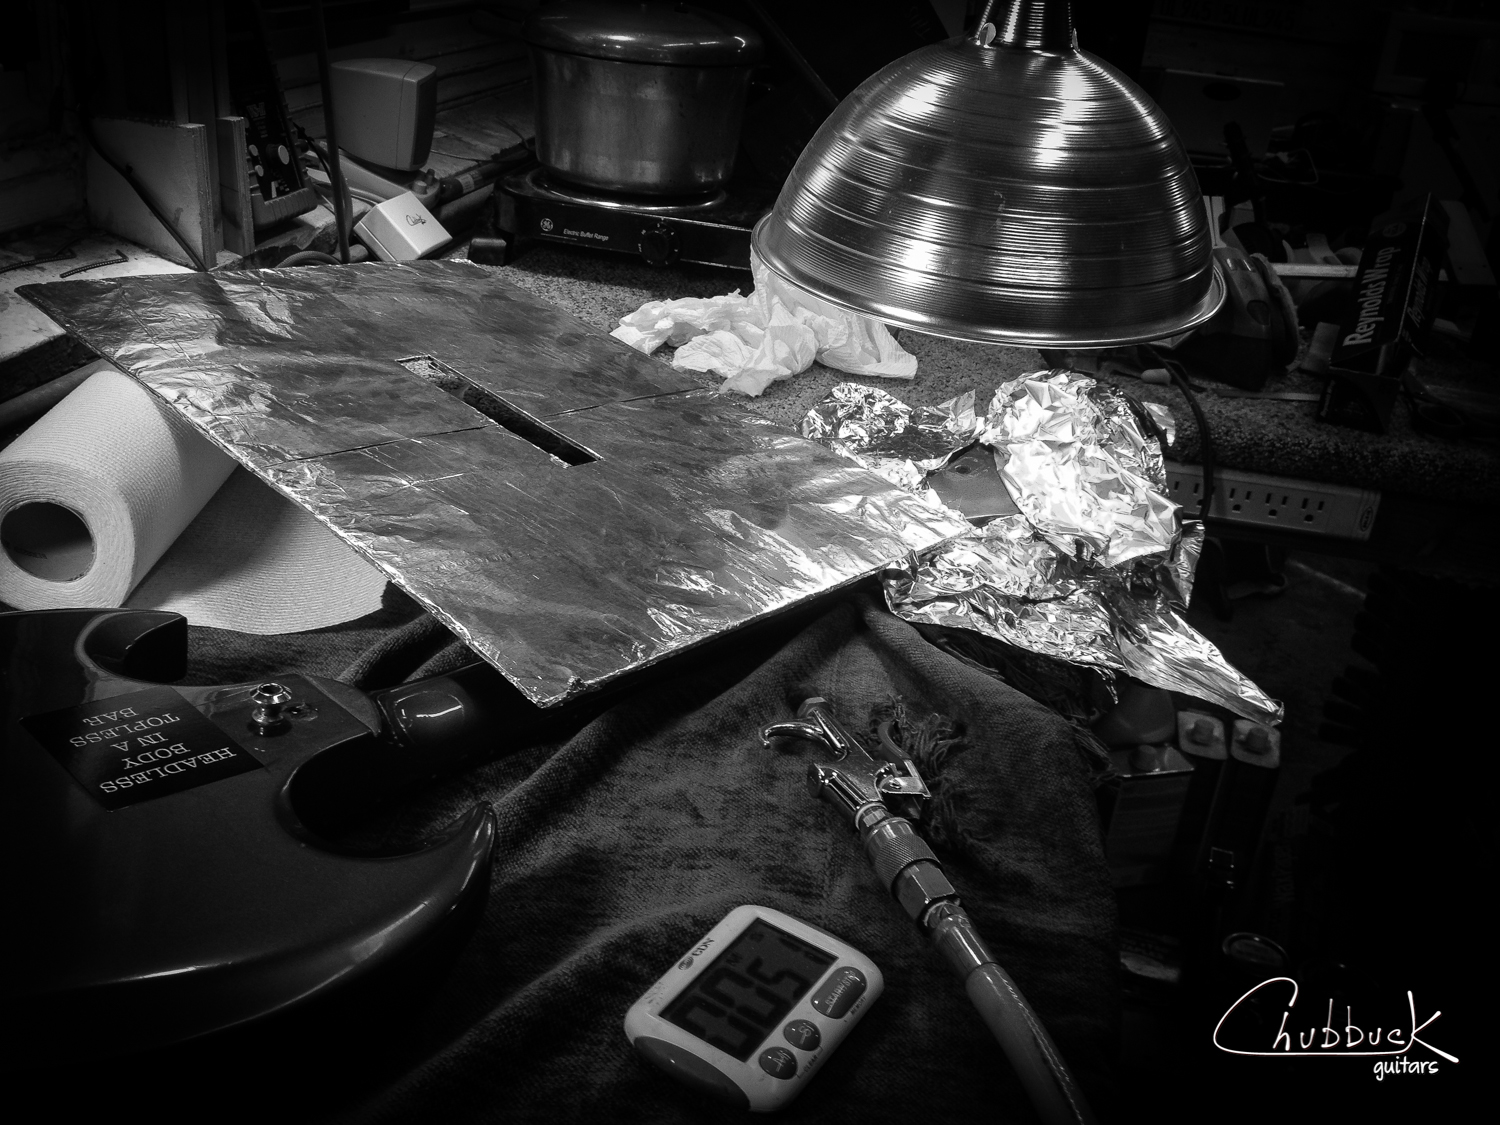 The break was only partially open.  I needed to apply heat and steam to re-break the headstock.  An ifrared heat lamp bulb was used for dry heat and in the background is my neck-reseting pressure pot rig that I used to apply hot steam to the joint.